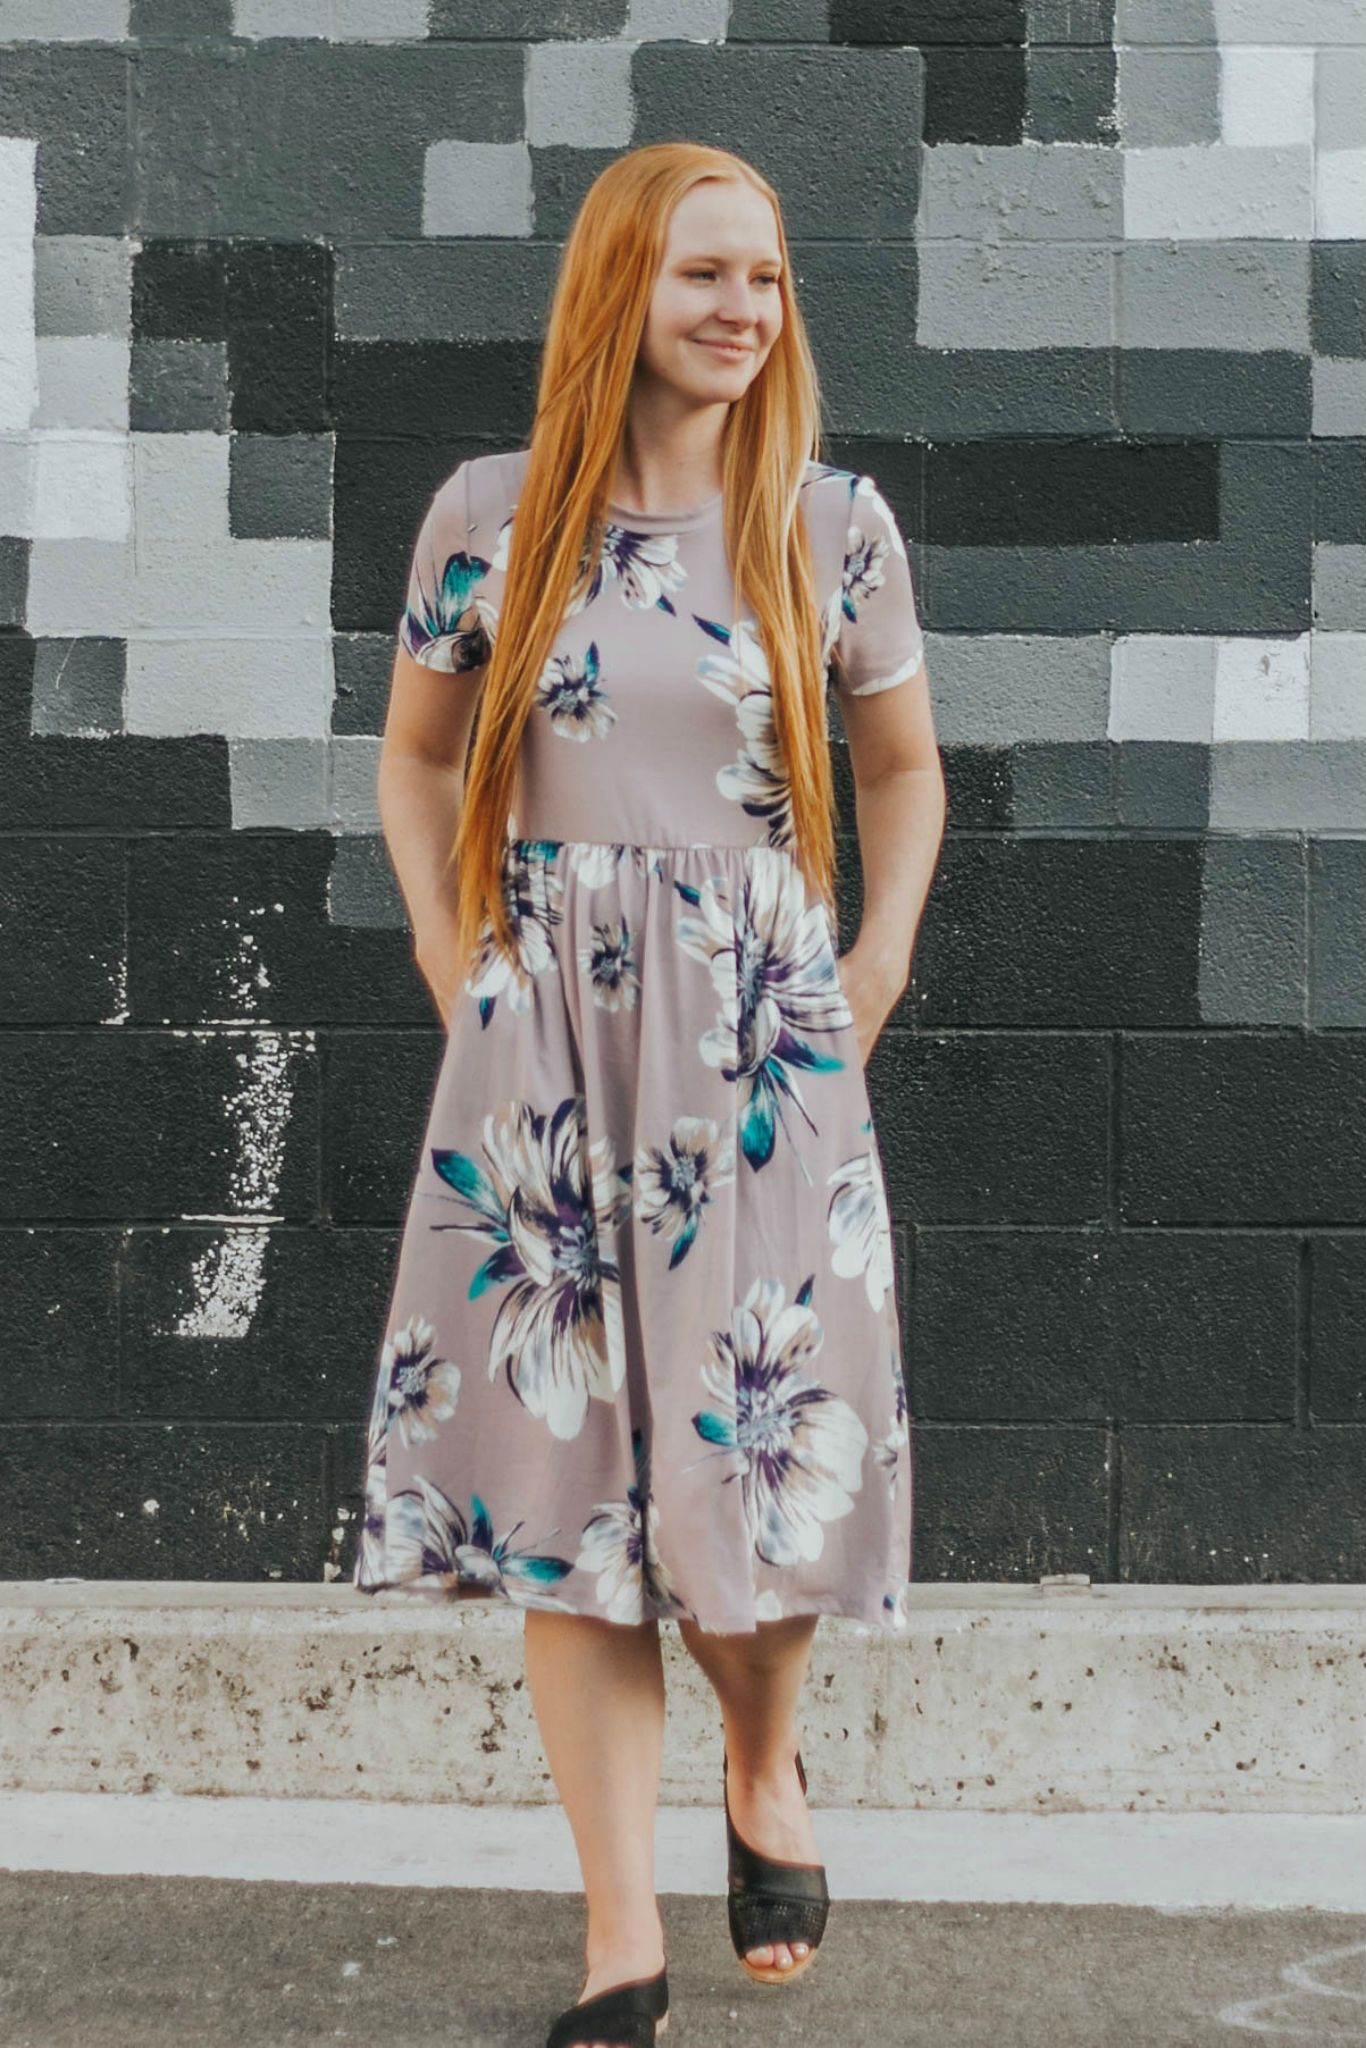 72f282ec4cc Floral dresses will never let you down!  floral  dresses  modestclothing   lilac  cleomadison